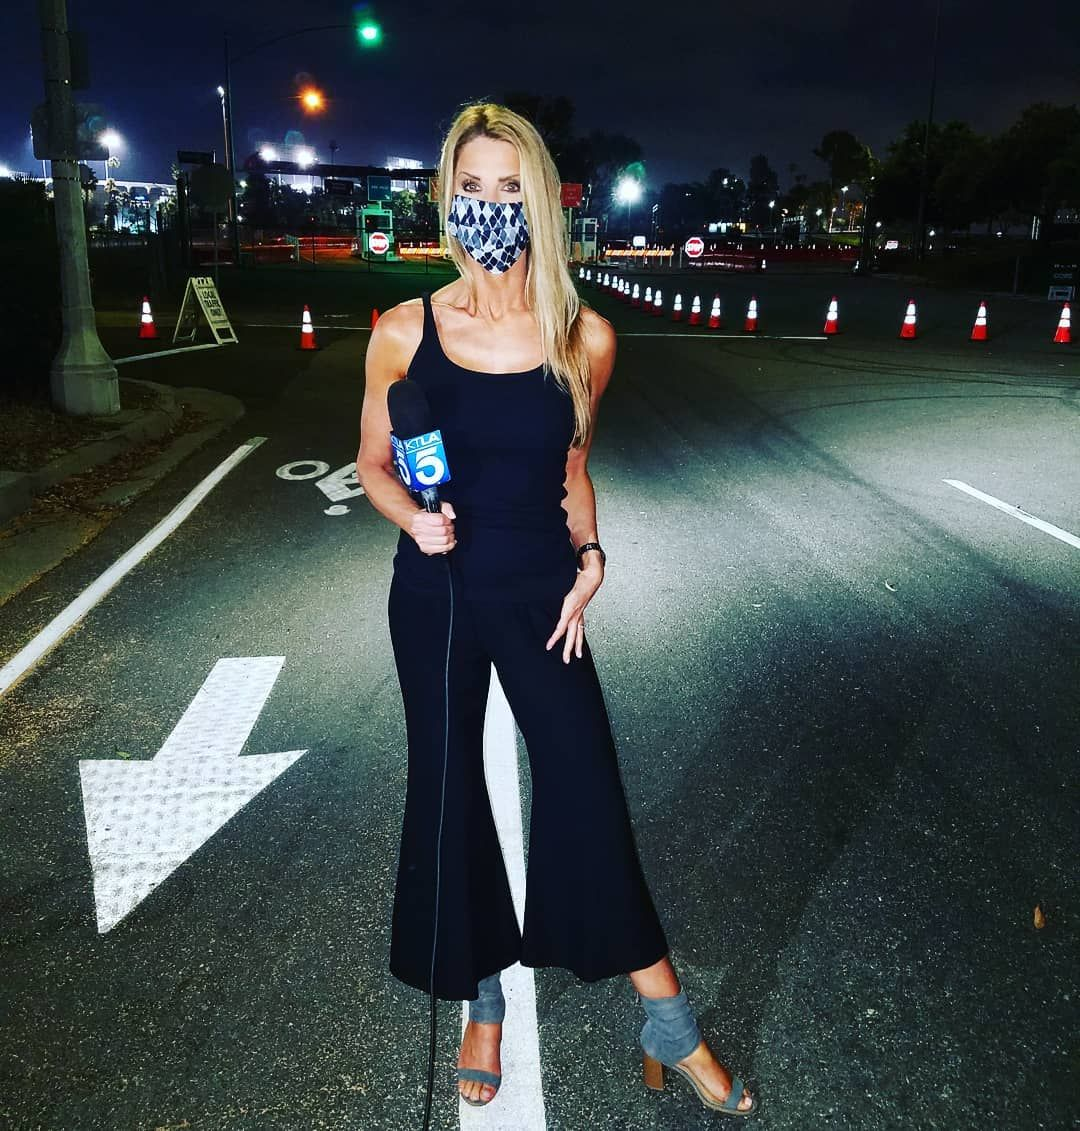 Jennifer Gould On Instagram C Jennifergould Could Los Angeles Be On The Brink Of Another Stay At Home Order La Mayor Eric Garcetti Has Said For The Las In 2020